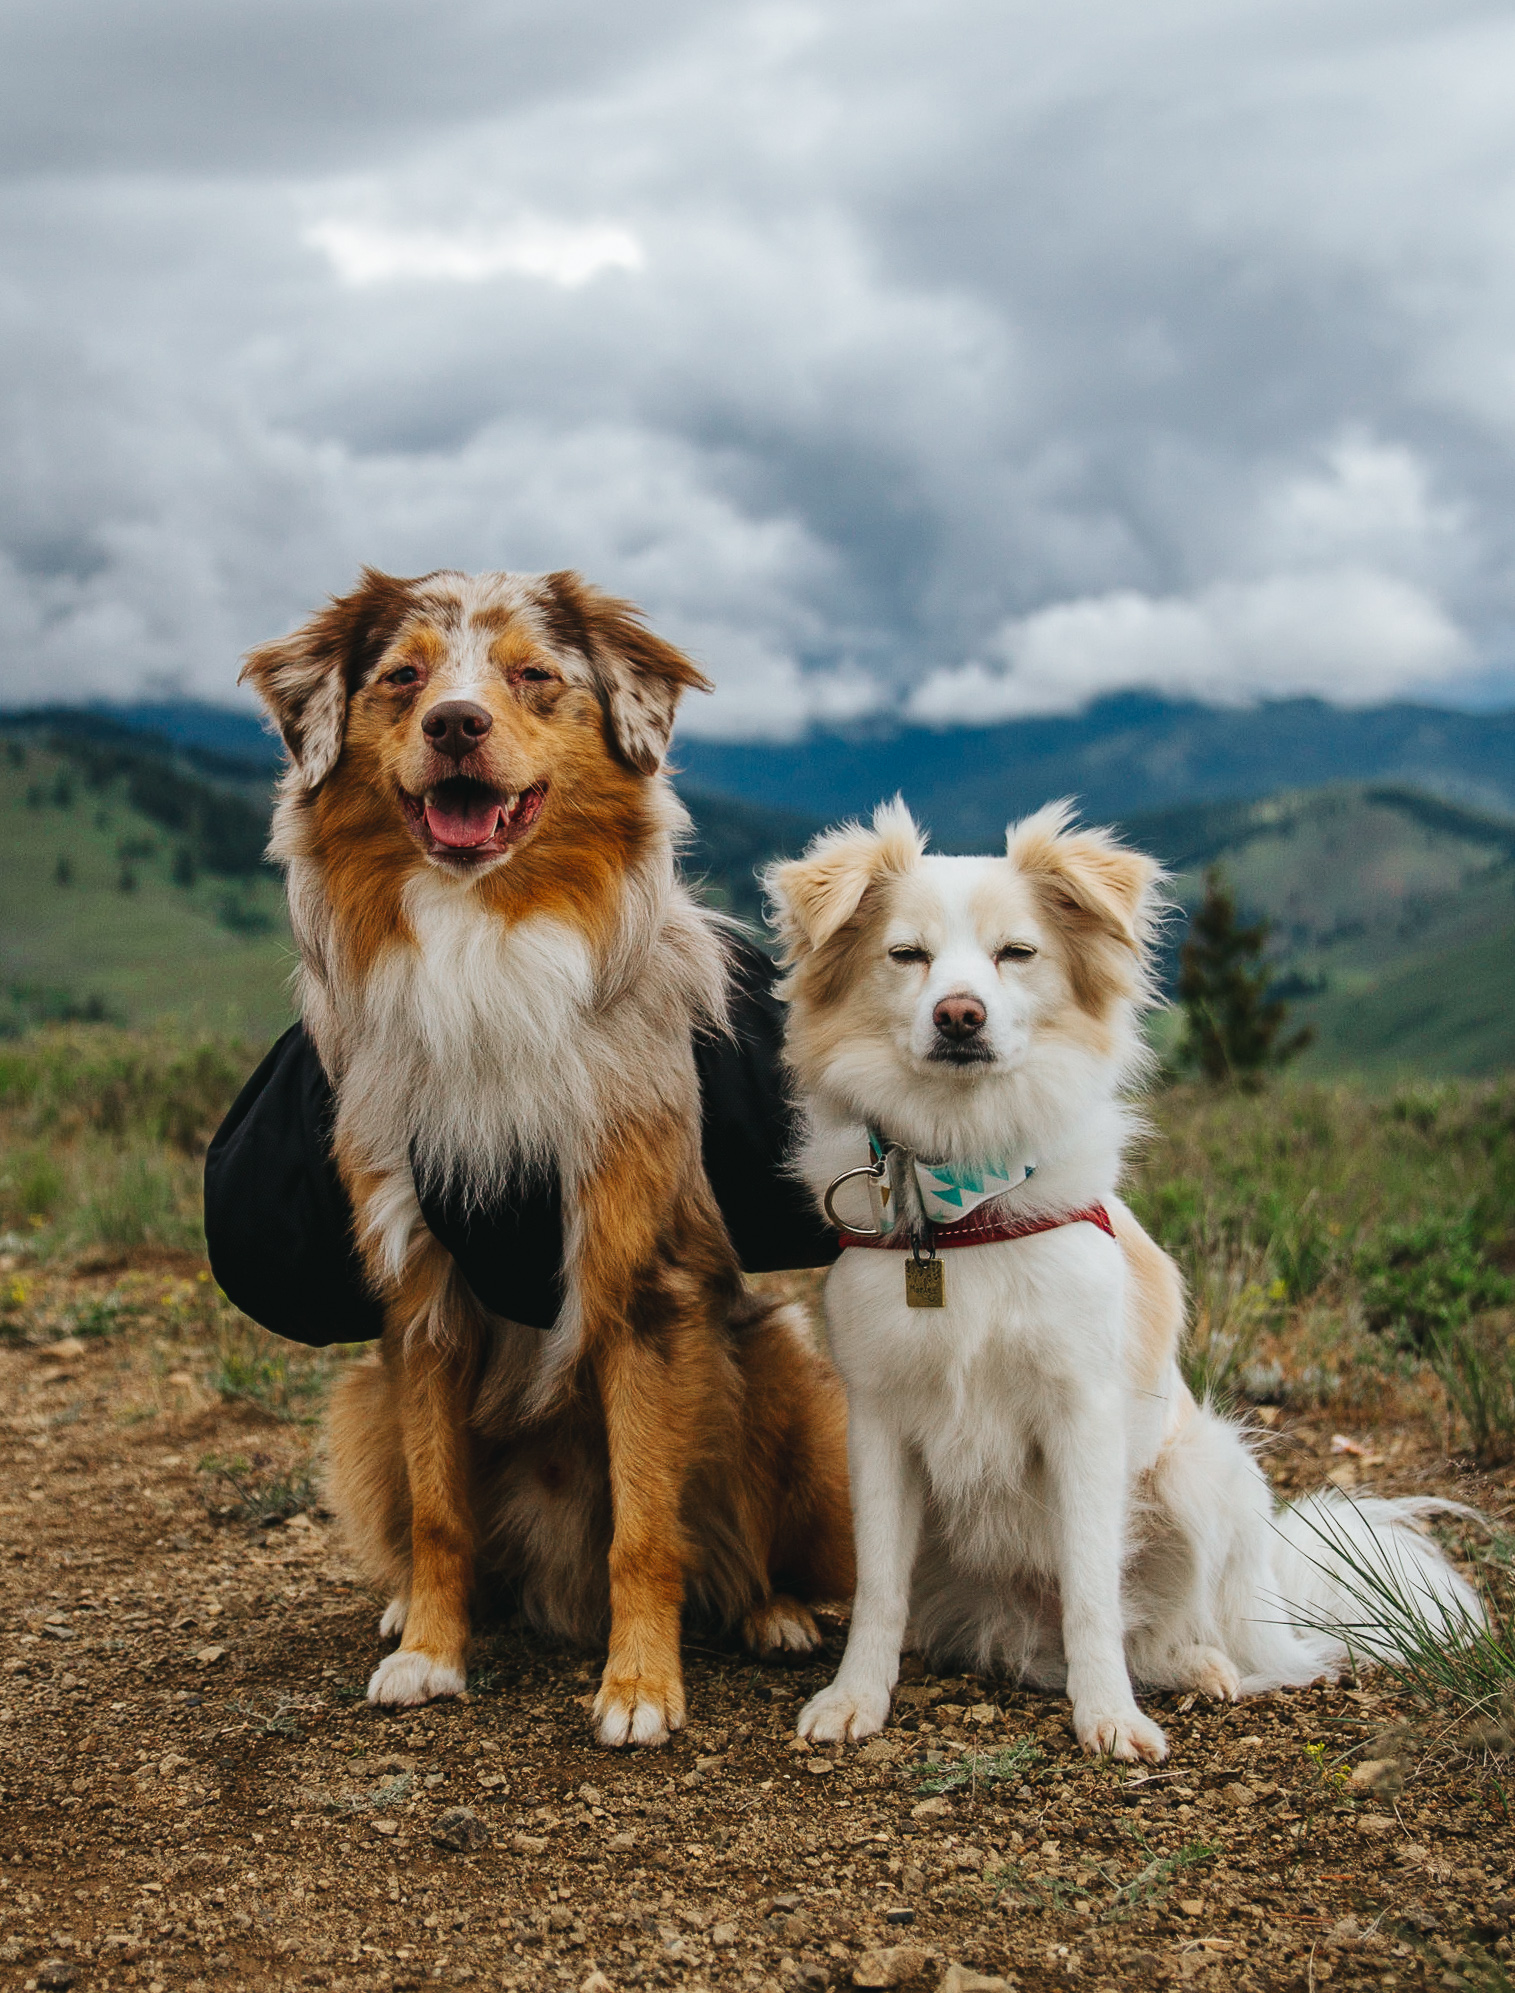 Dogs on mountainside